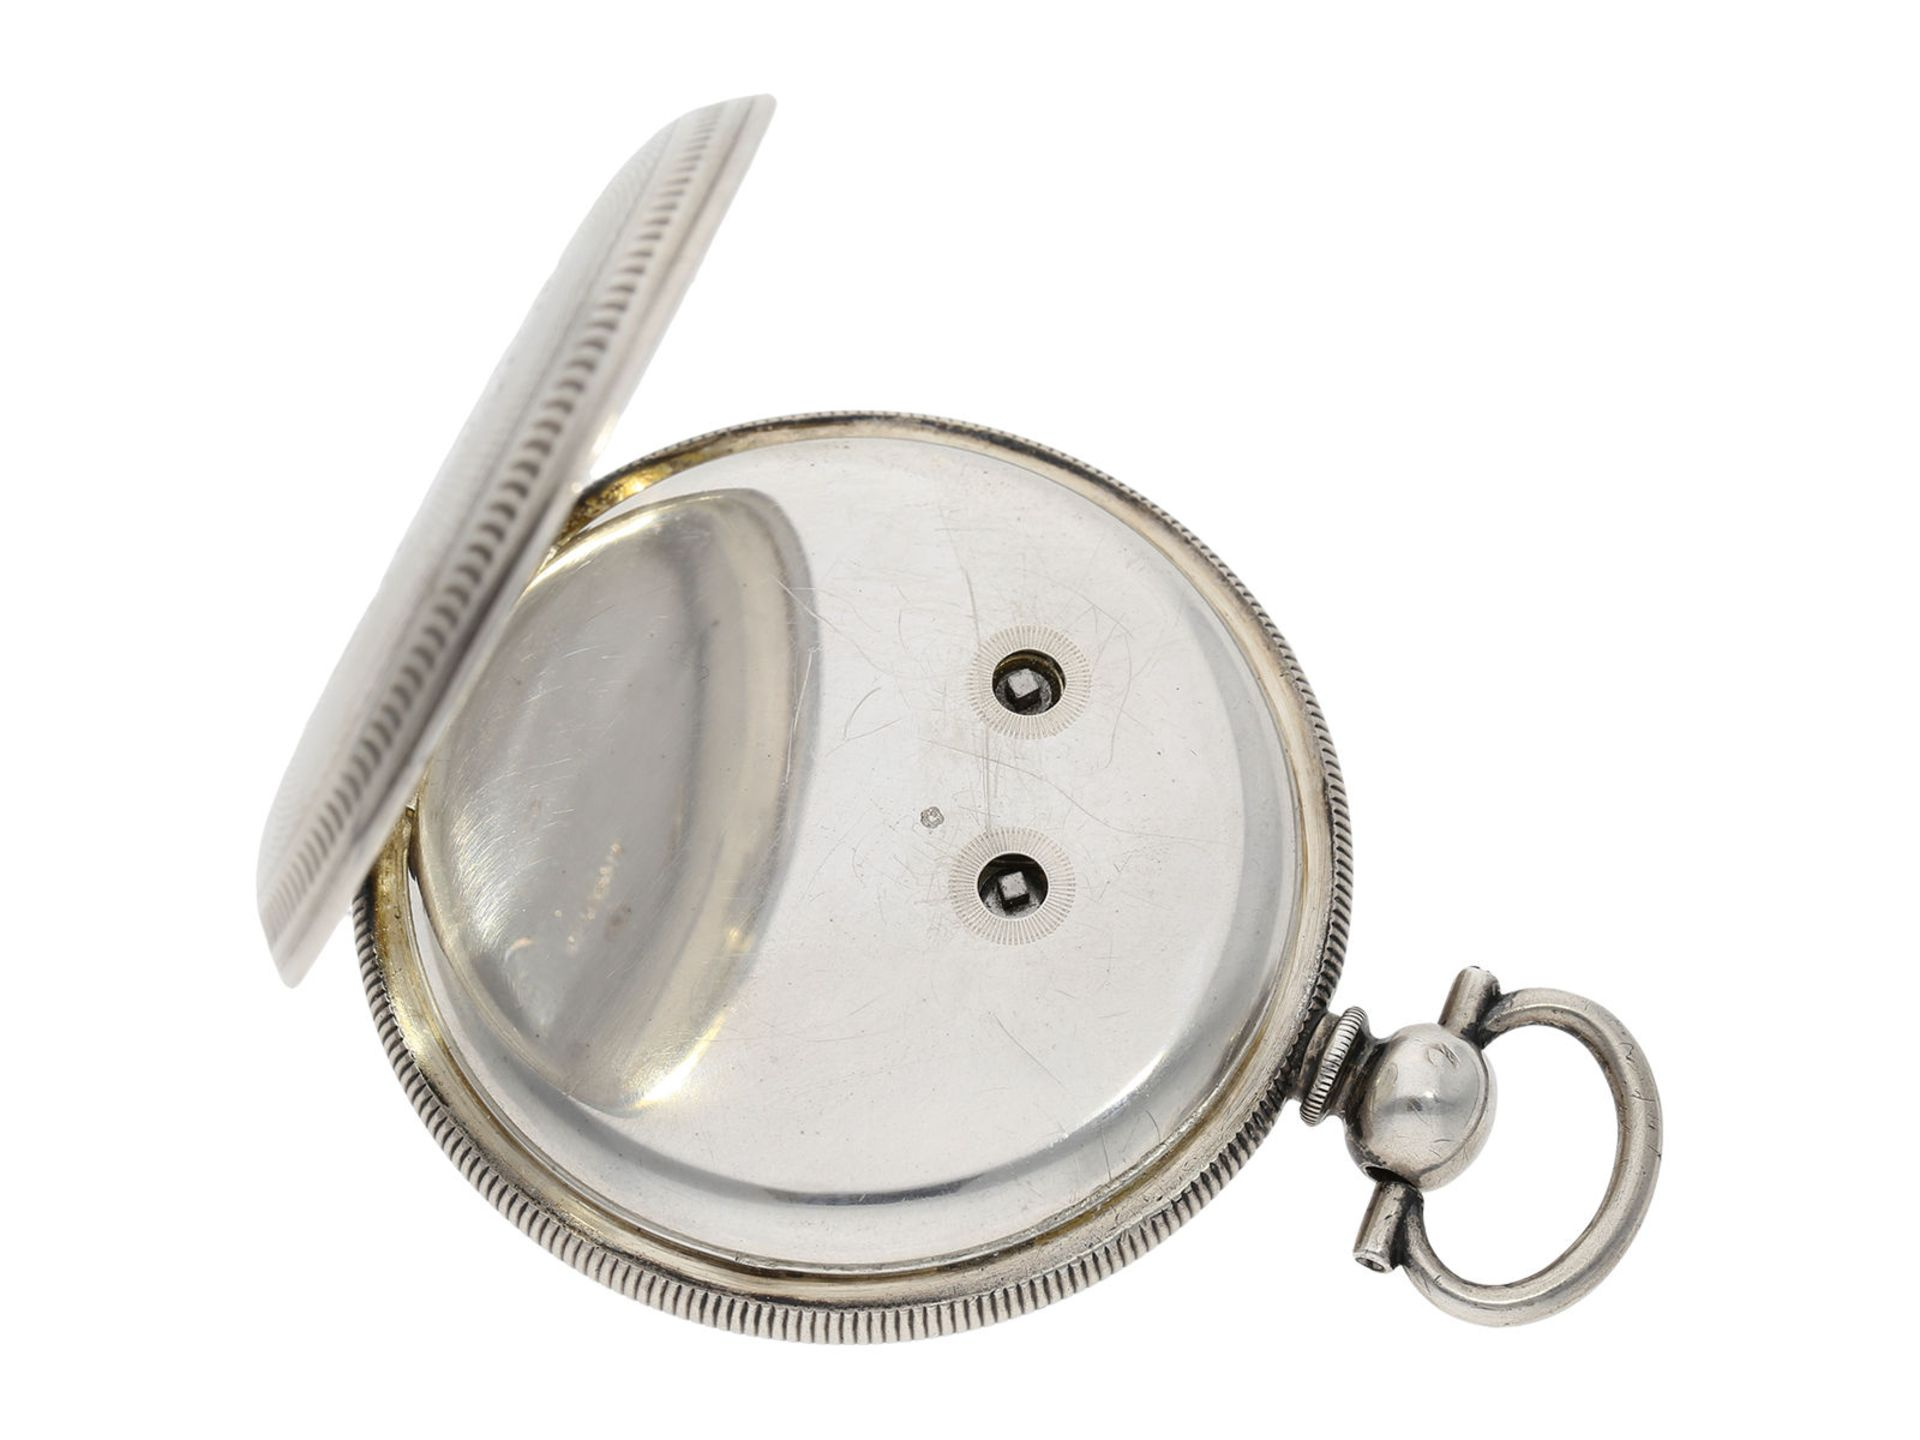 Pocket watch: large man's pocket watch with center seconds and mock pendulum, Switzerland for the - Bild 6 aus 7